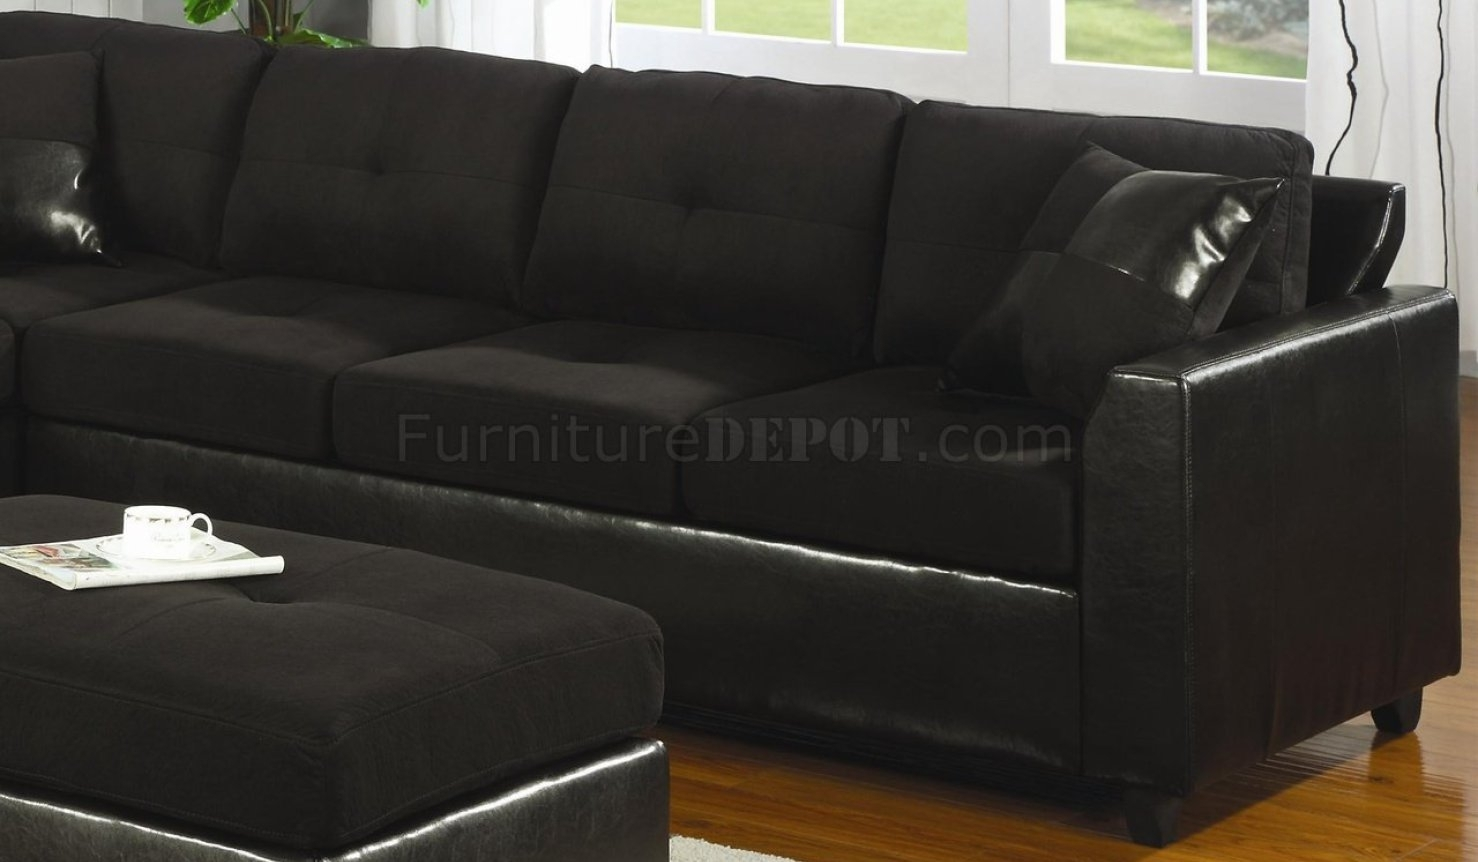 Cleaner : Awesome Couches Awesome Suede Sectional Sofas Cheap Intended For Phoenix Sectional Sofas (Image 4 of 10)